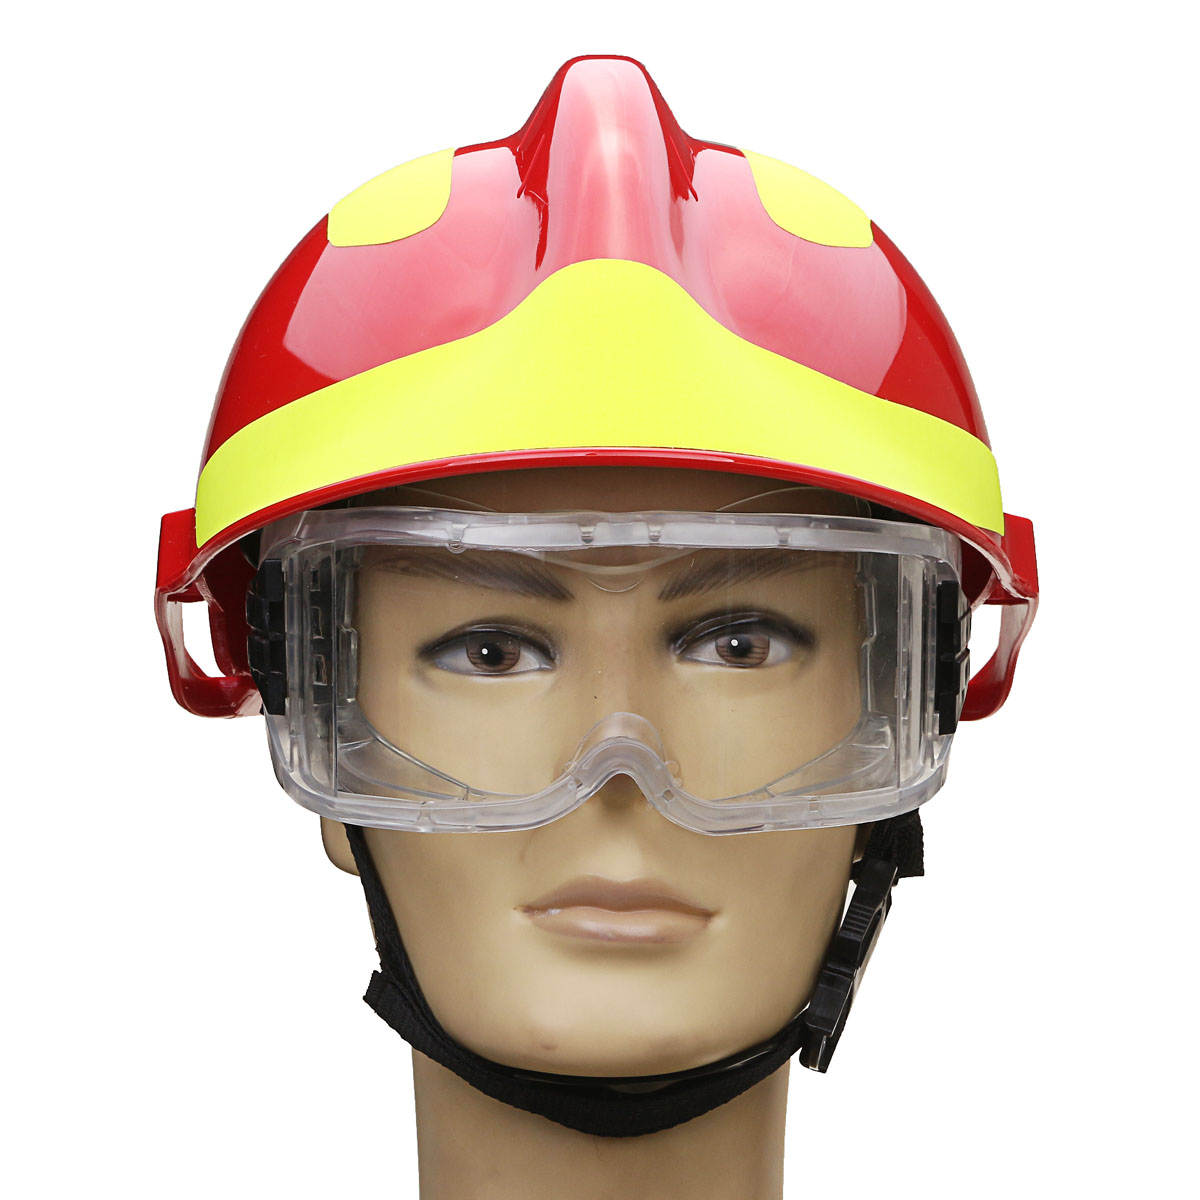 NEW Safurance Rescue Helmet Fire Fighter Protective Glasses Safety Protector  Workplace Safety Fire Protection  53CM-63CM fire maple sw28888 outdoor tactical motorcycling wild game abs helmet khaki